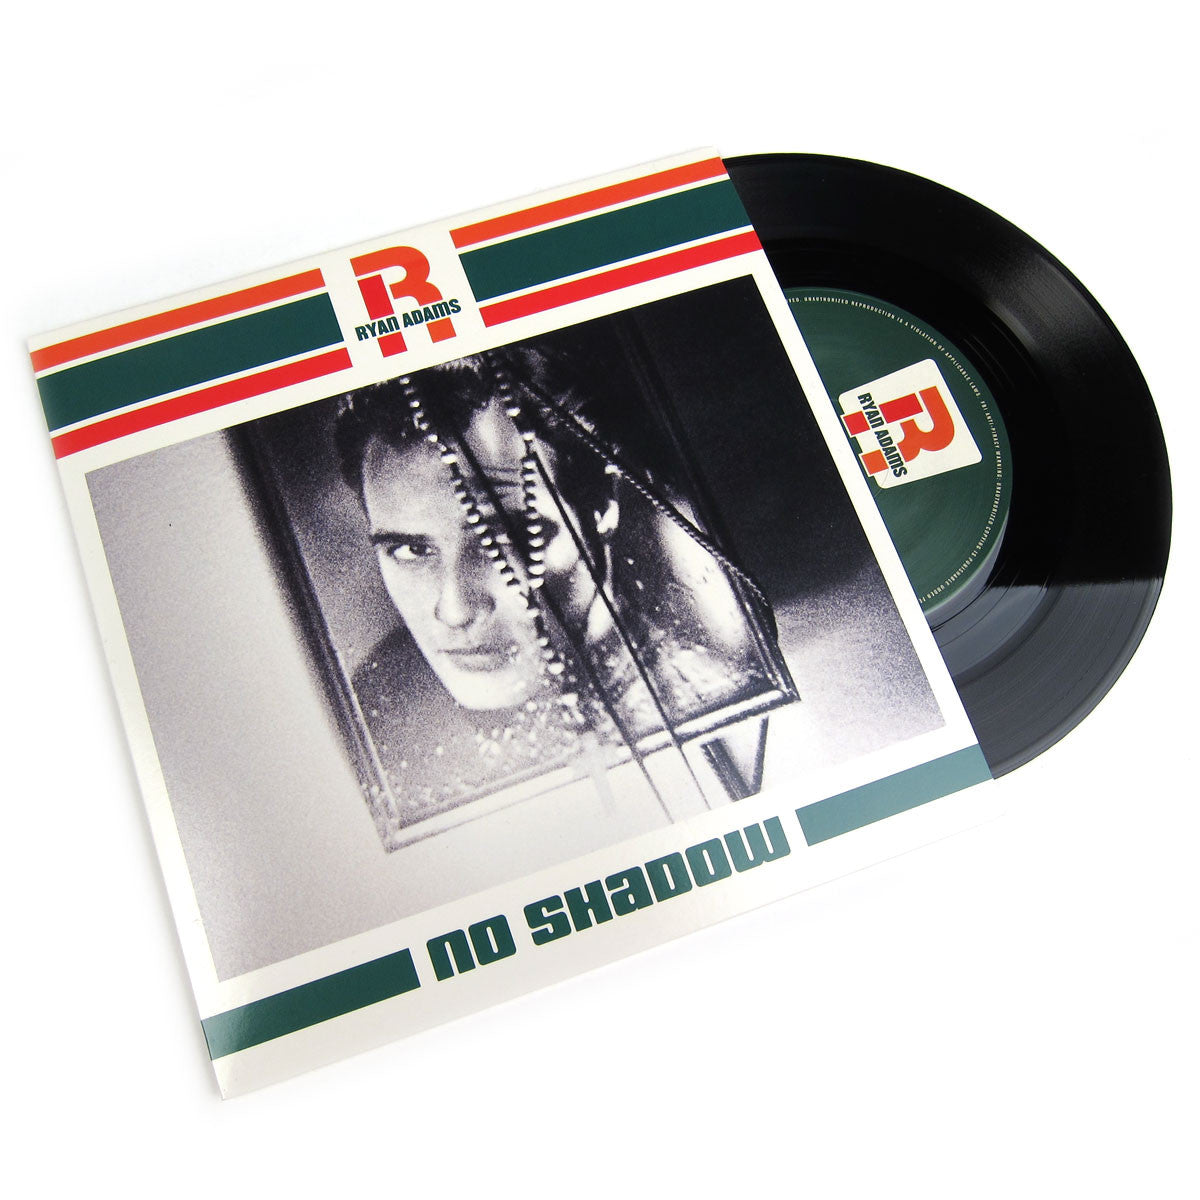 Ryan Adams: No Shadow (Limited Edition) Vinyl 7""